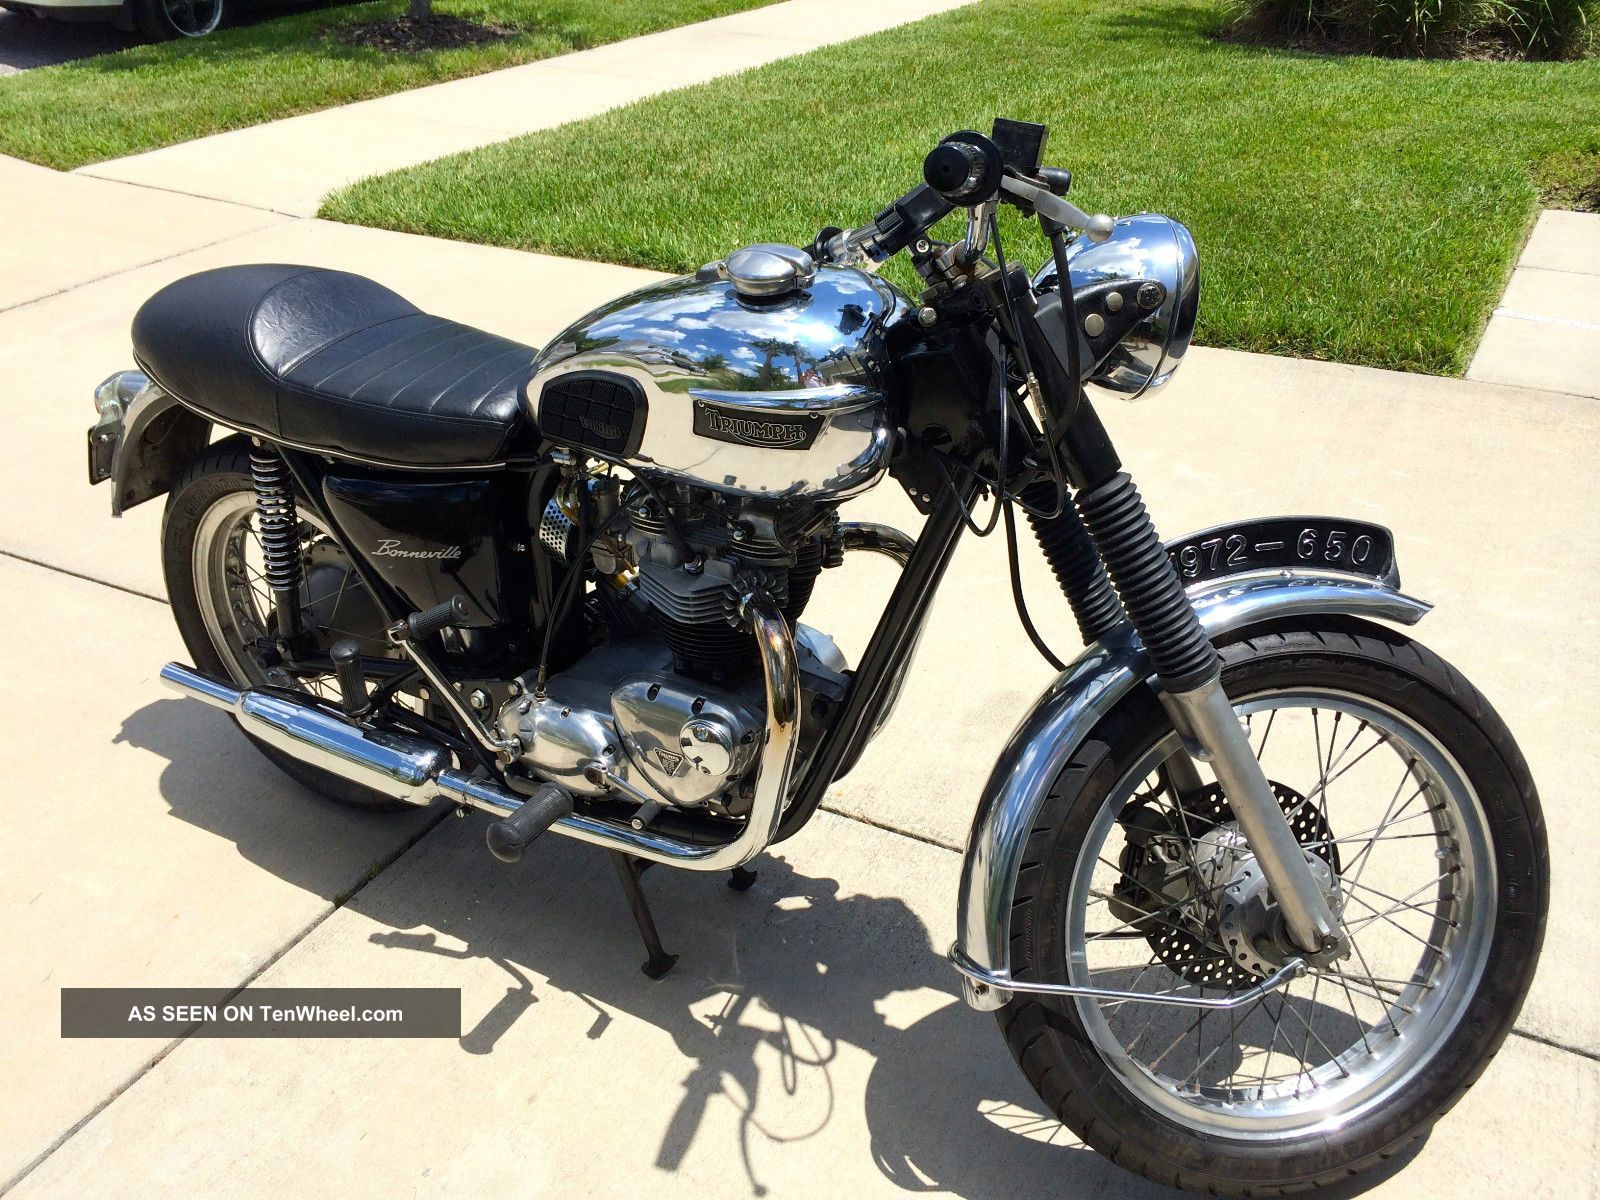 1972 triumph motorcycle modelson - photo #4